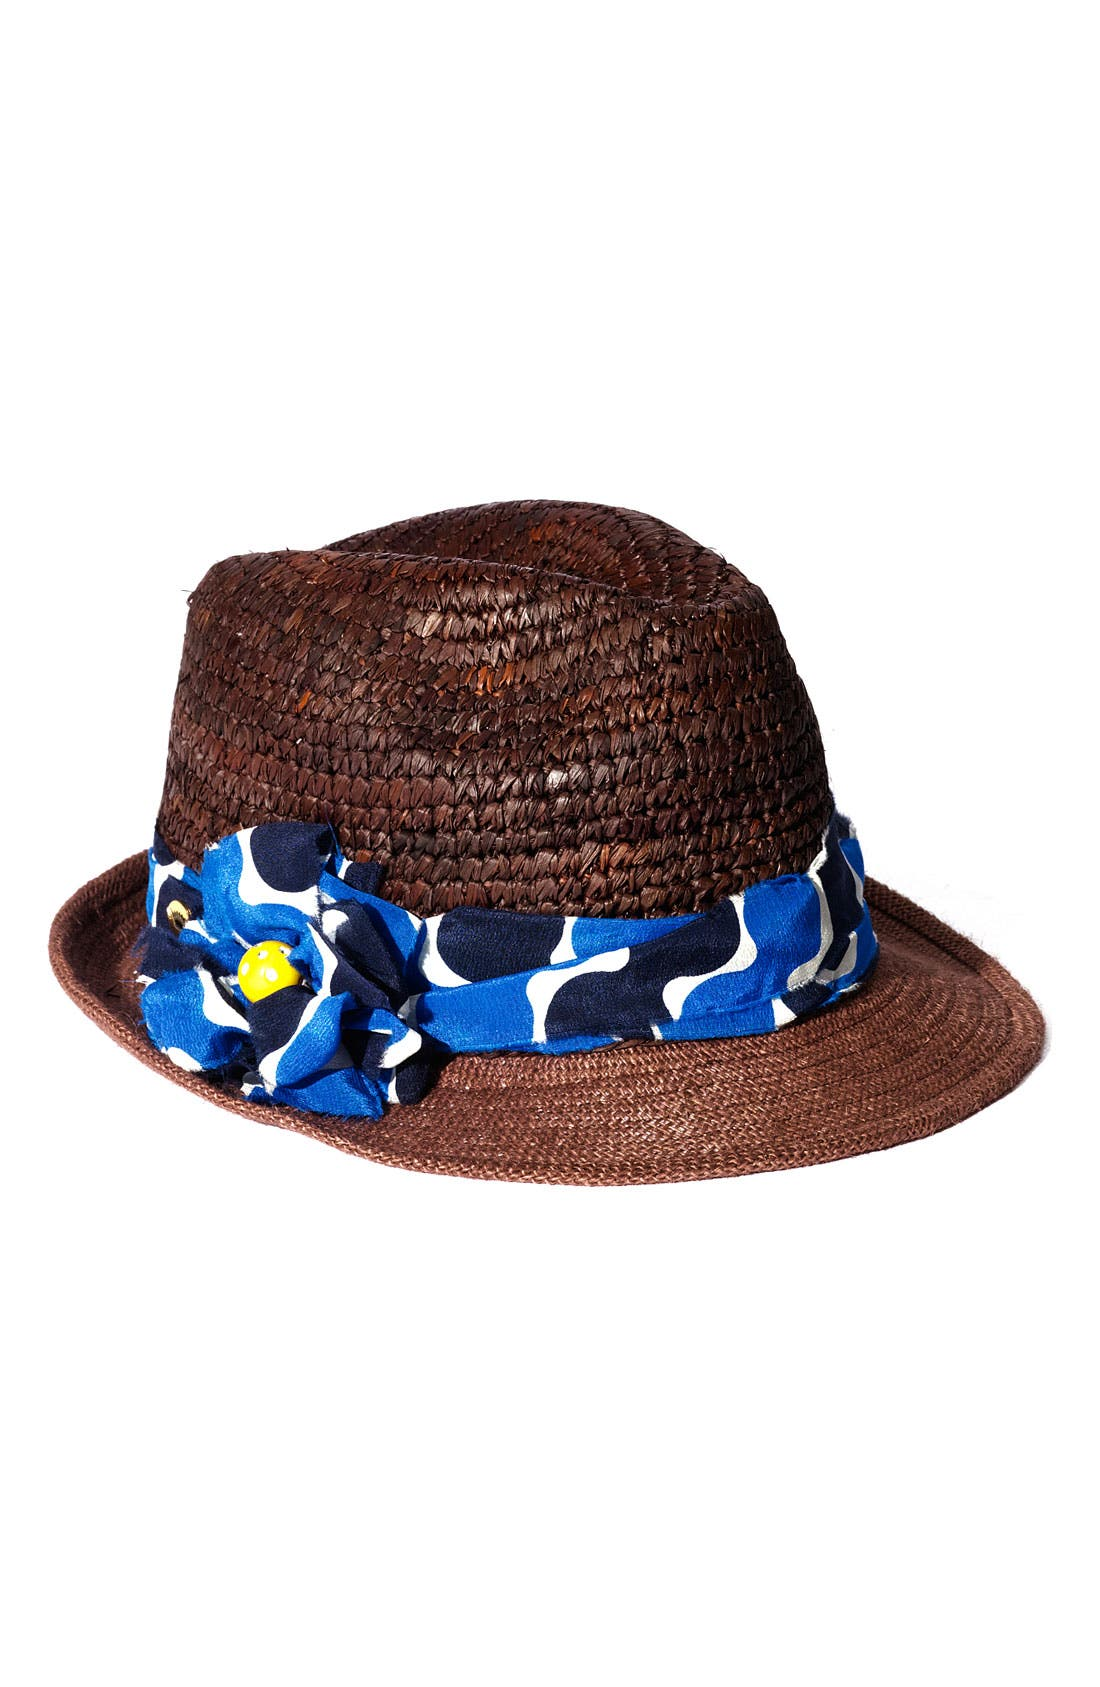 Alternate Image 1 Selected - Juicy Couture Straw and Burlap Fedora